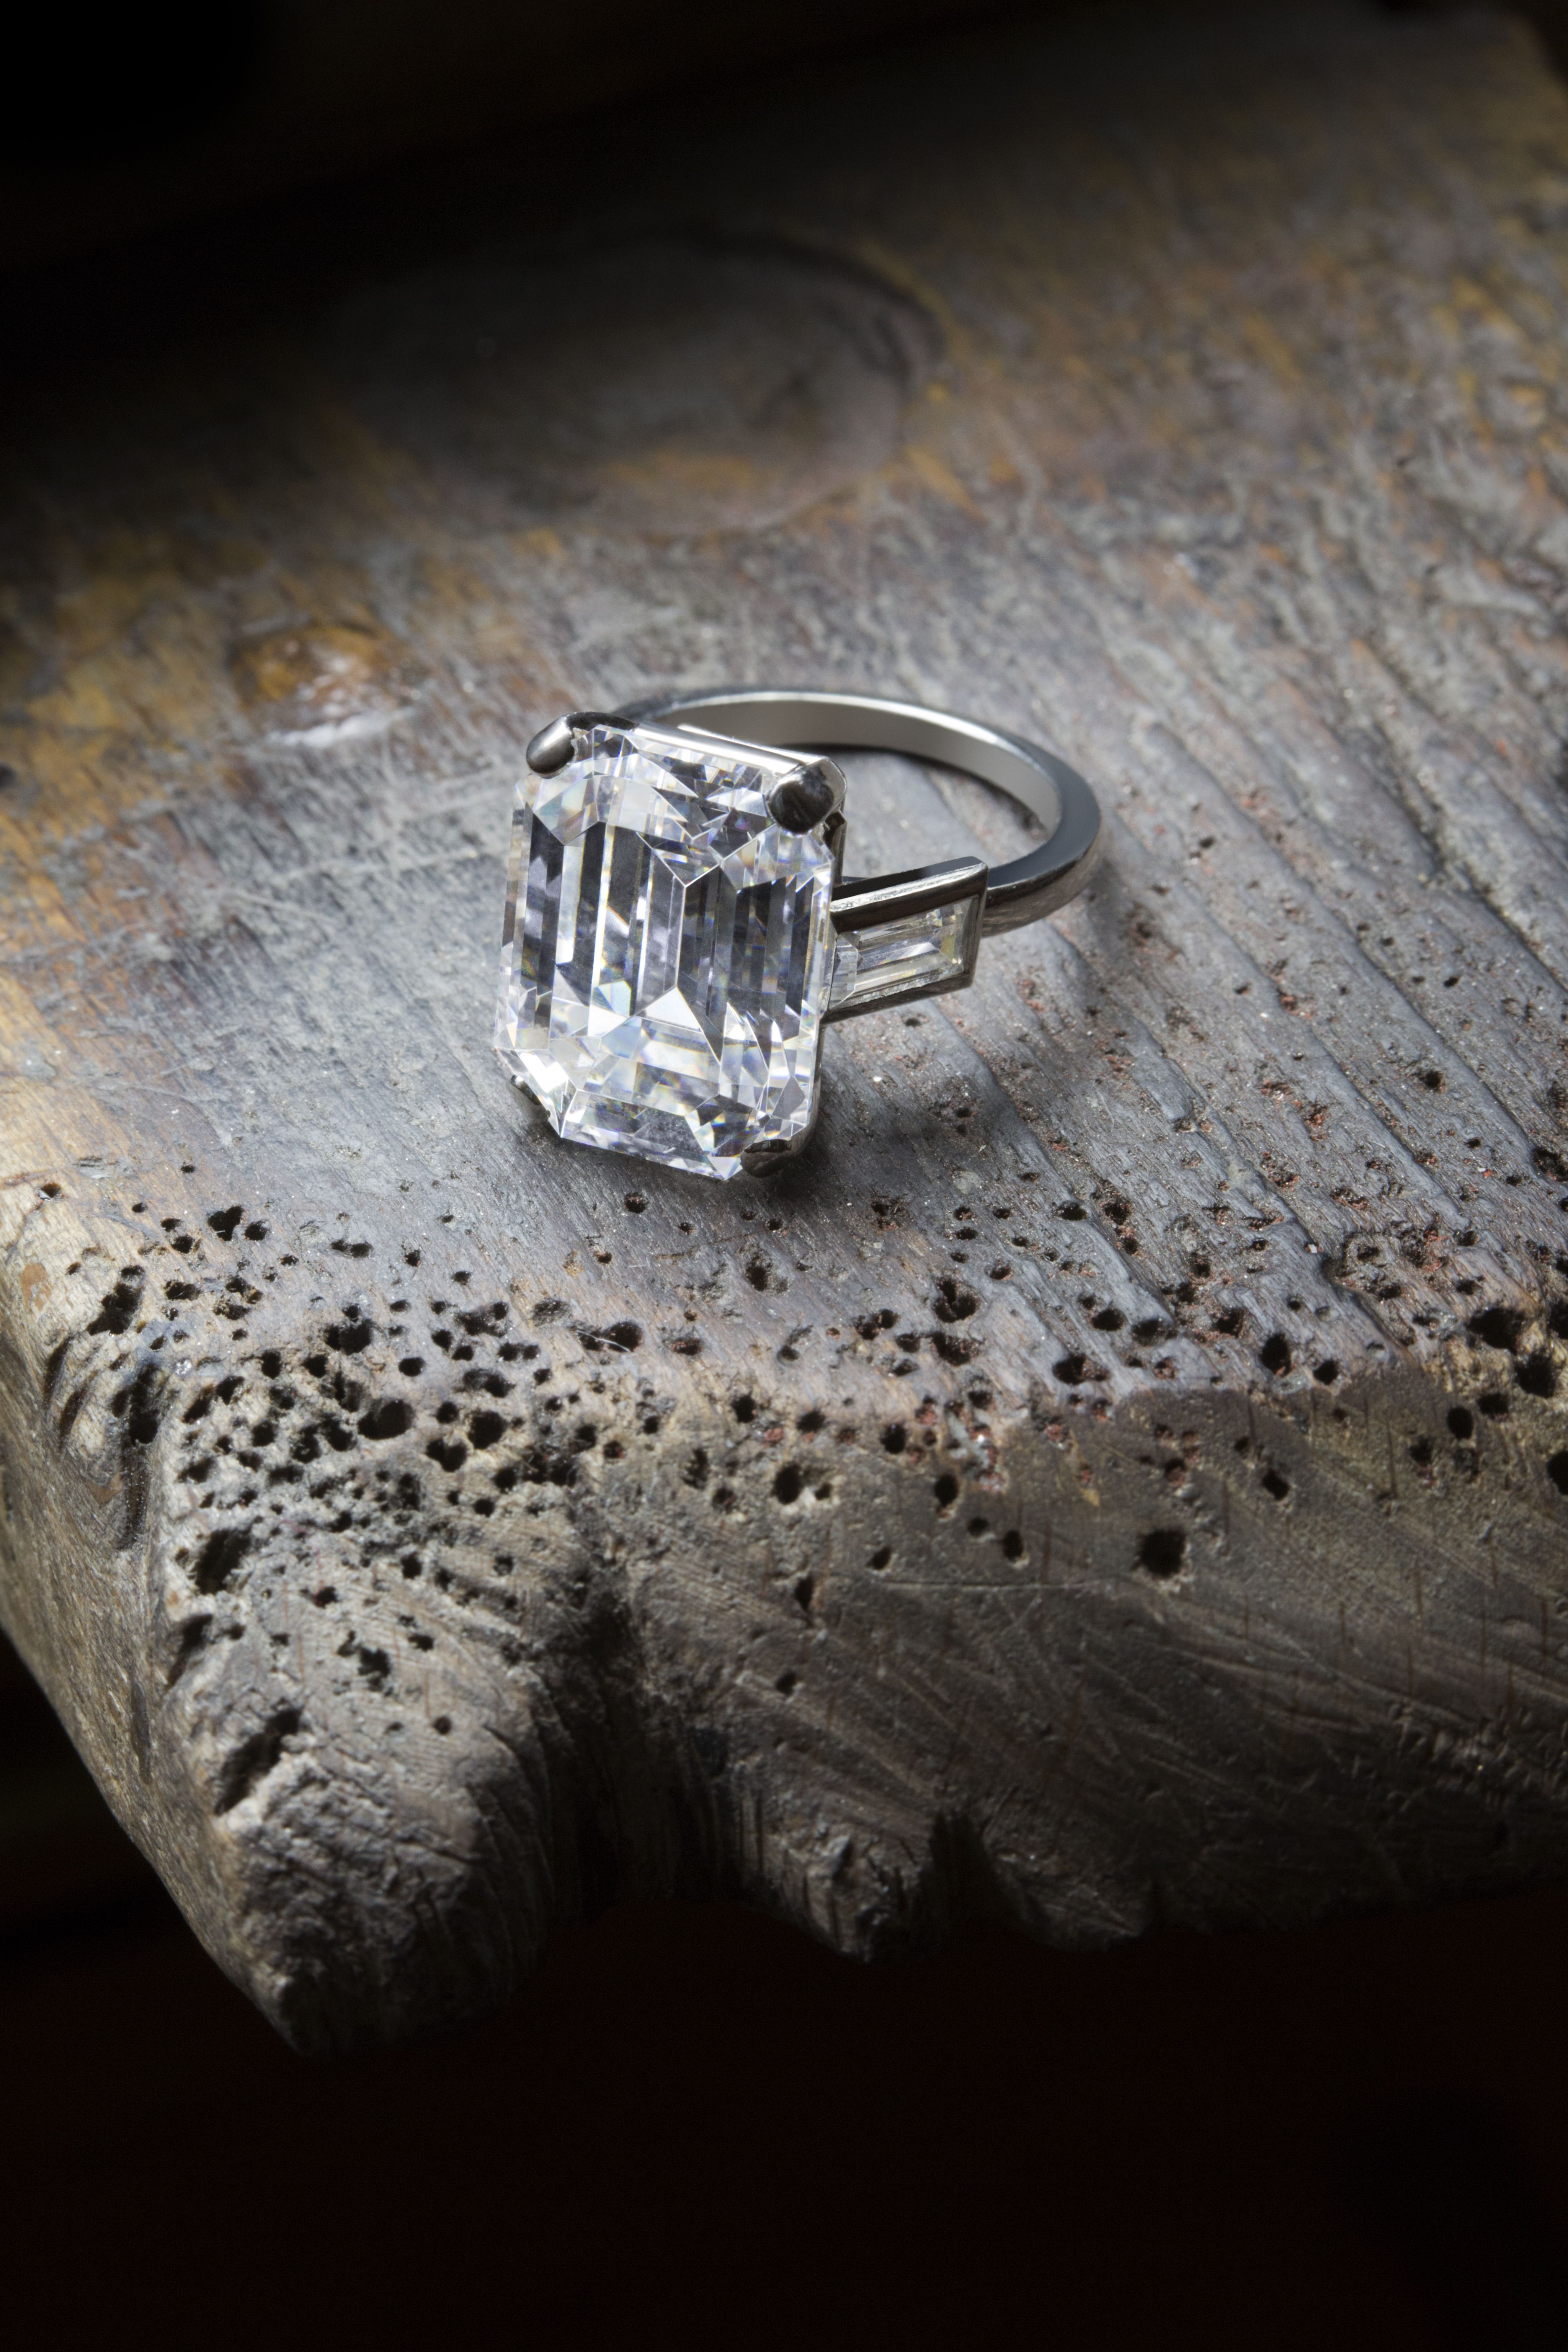 Pin by Melissa Coady on Fantasy Jewelry Box Engagement